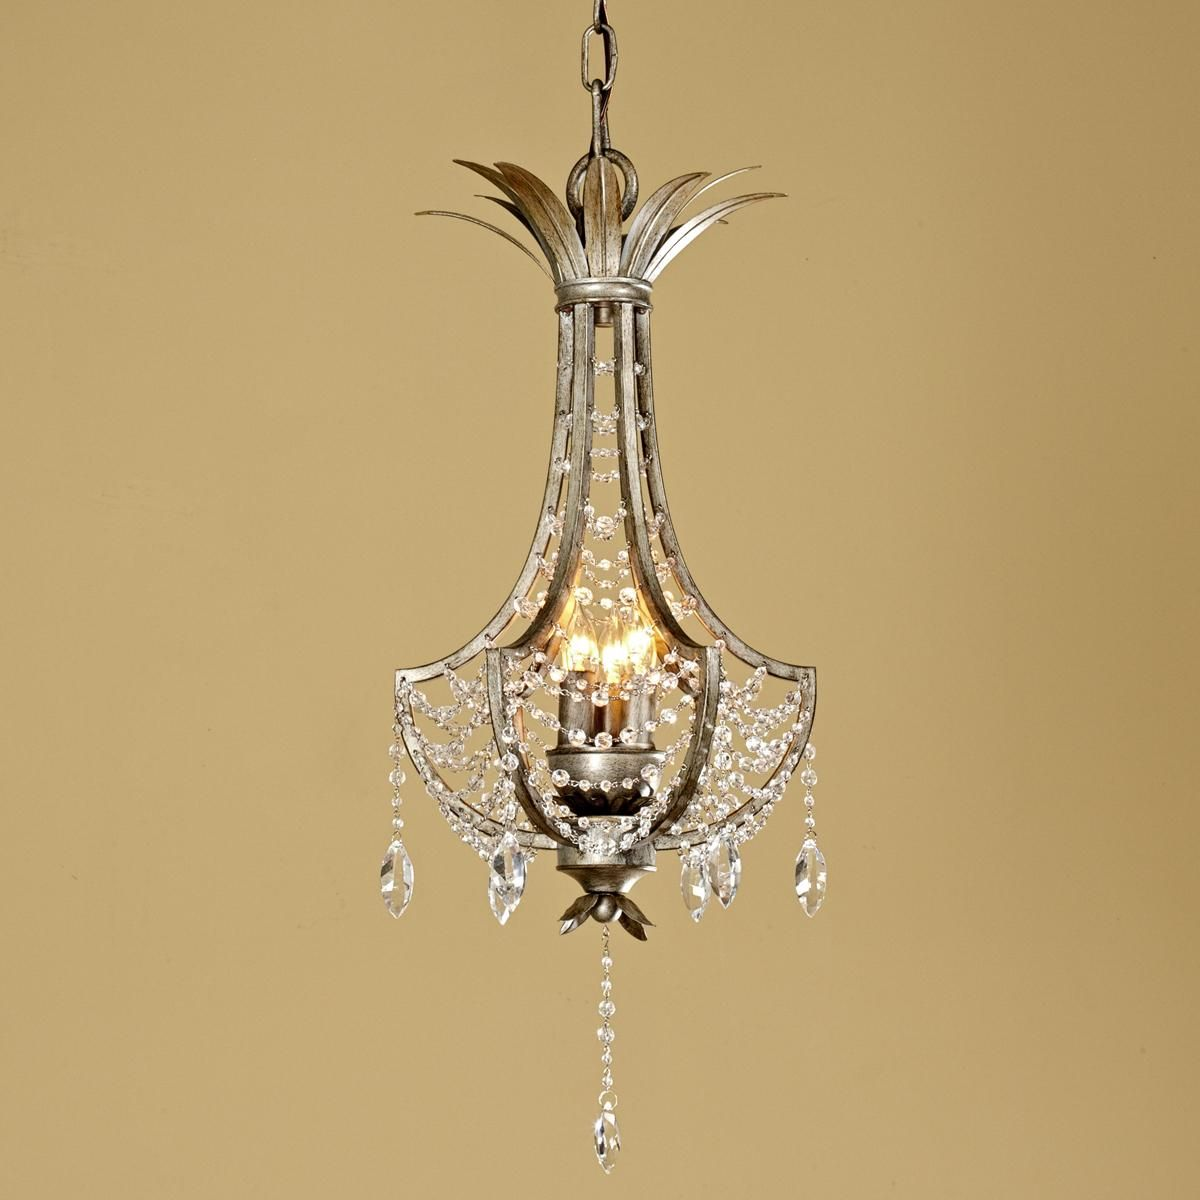 Shades Of Light Crystal Basket Mini Lantern 3 Light Use 2 For Foyer Chandeliers I Don T Love The Long Drop At